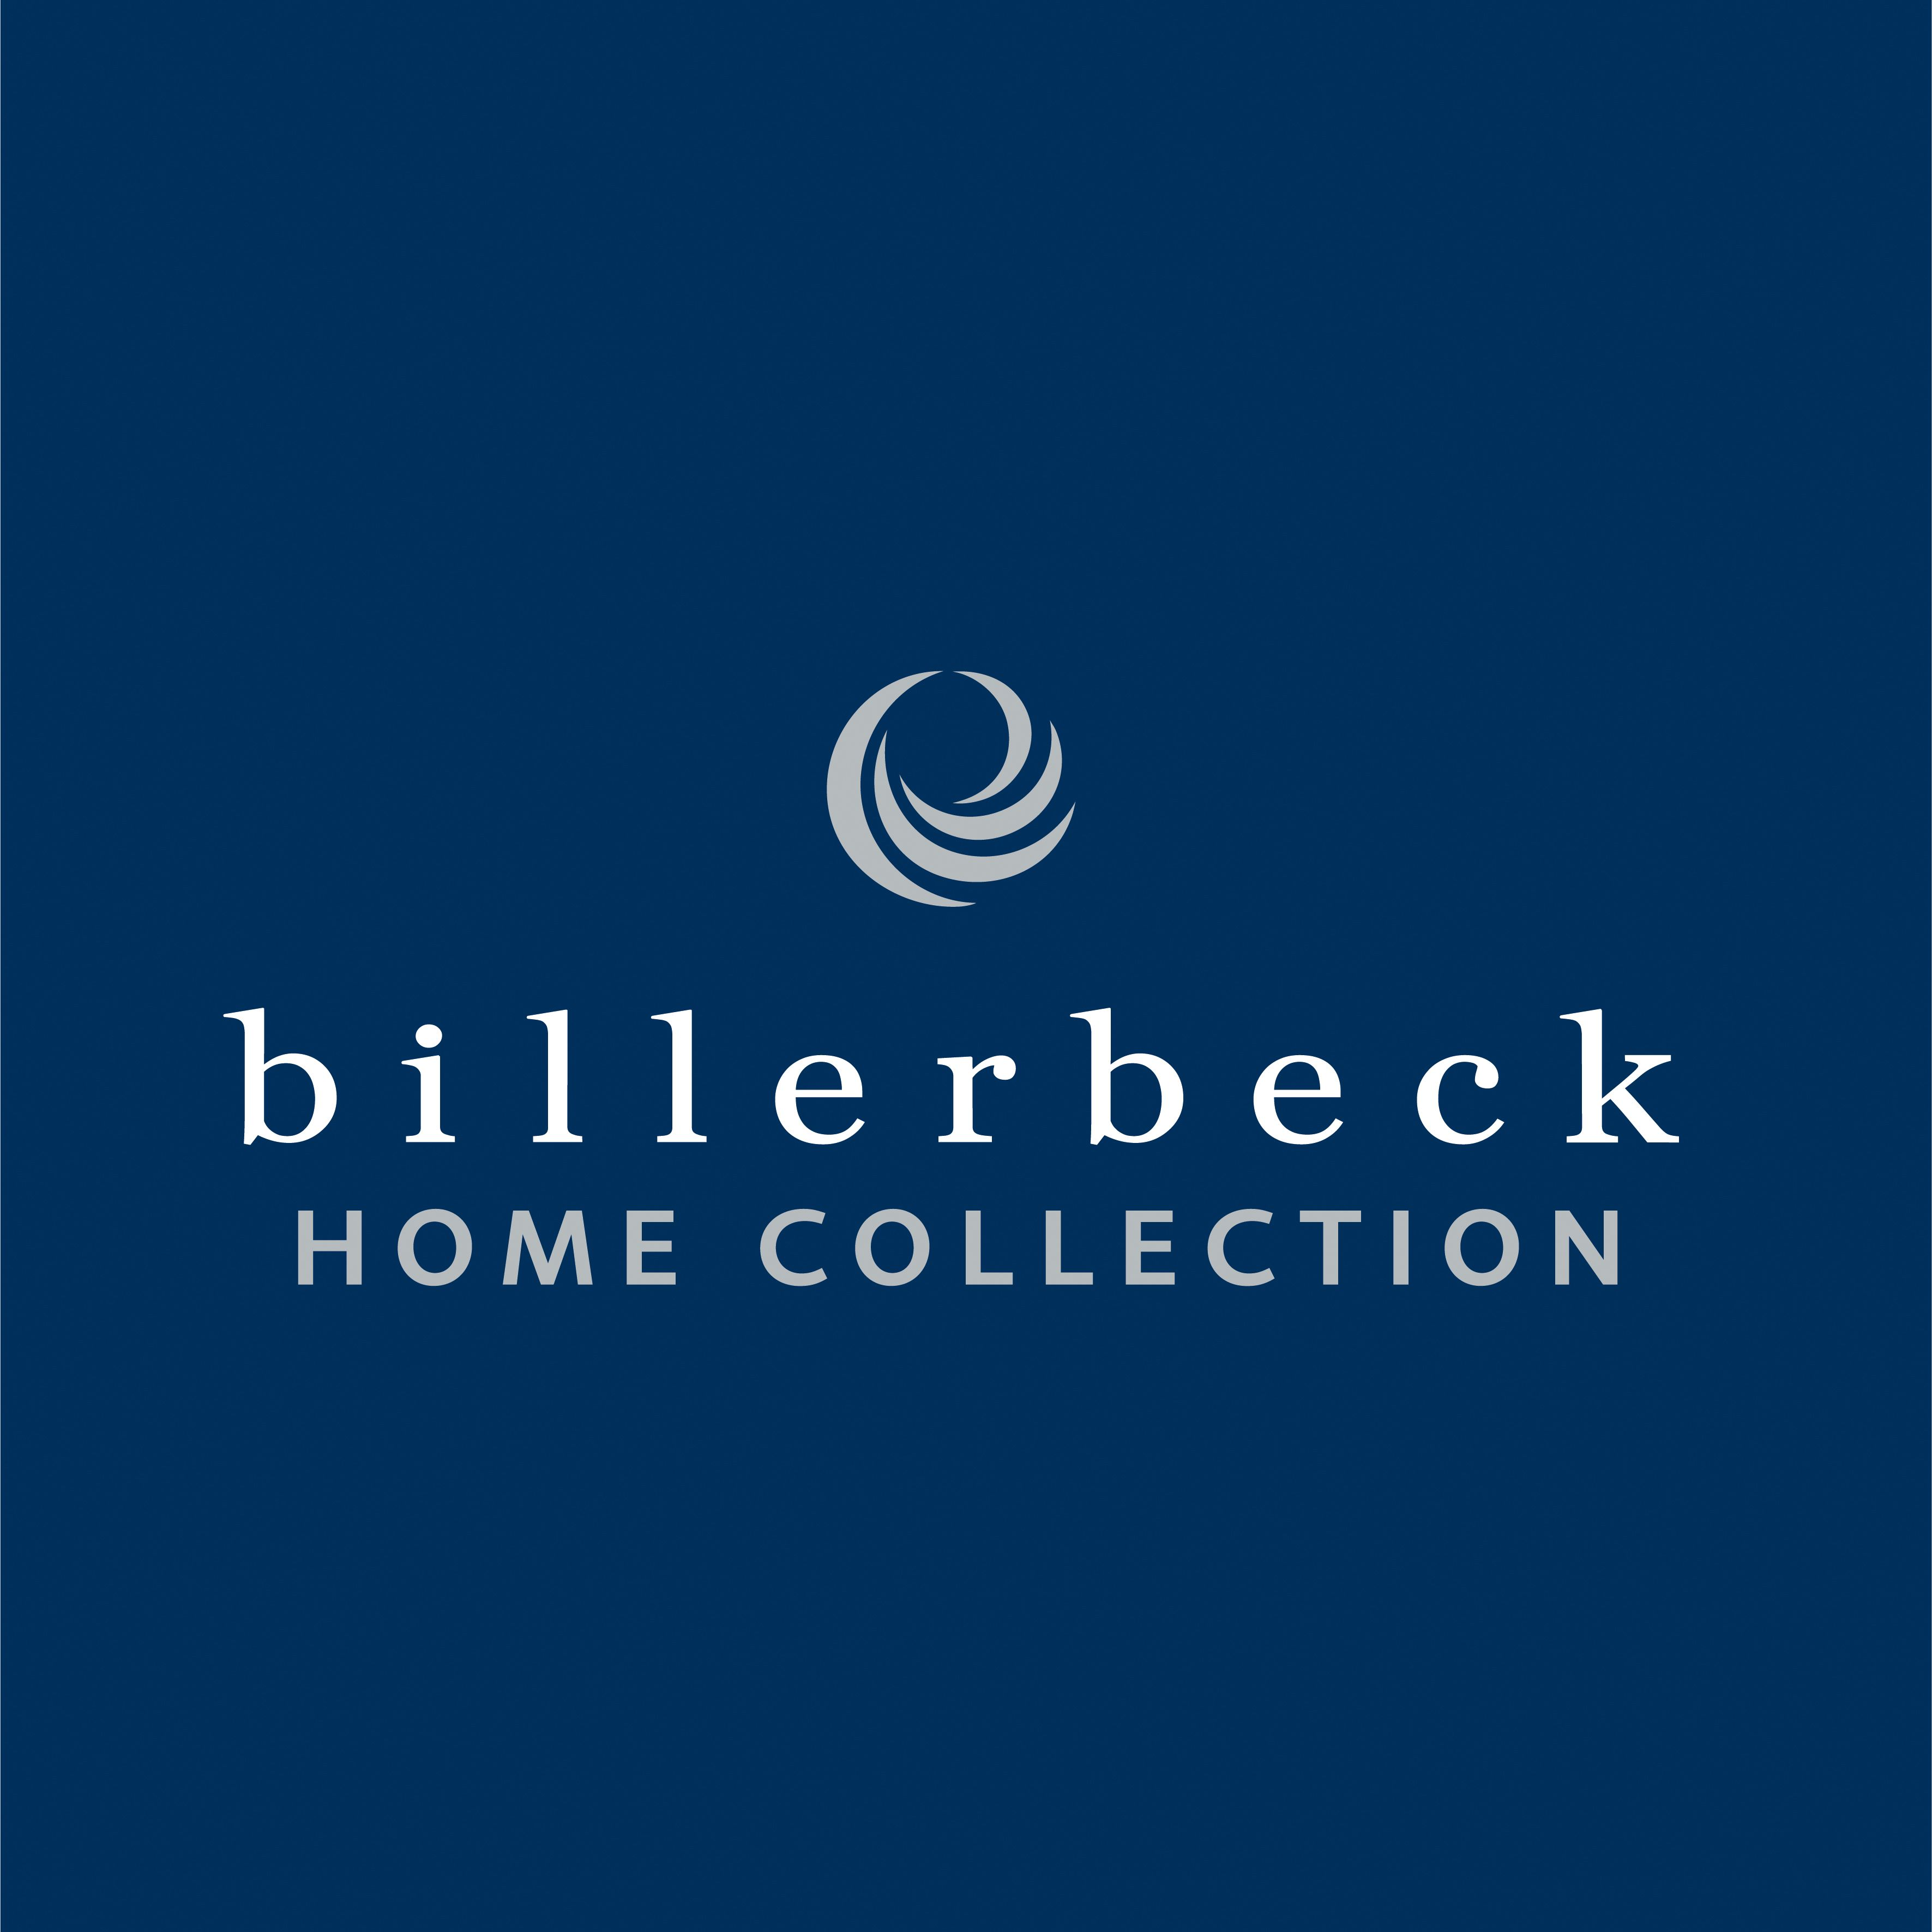 Billerbeck Homecollection